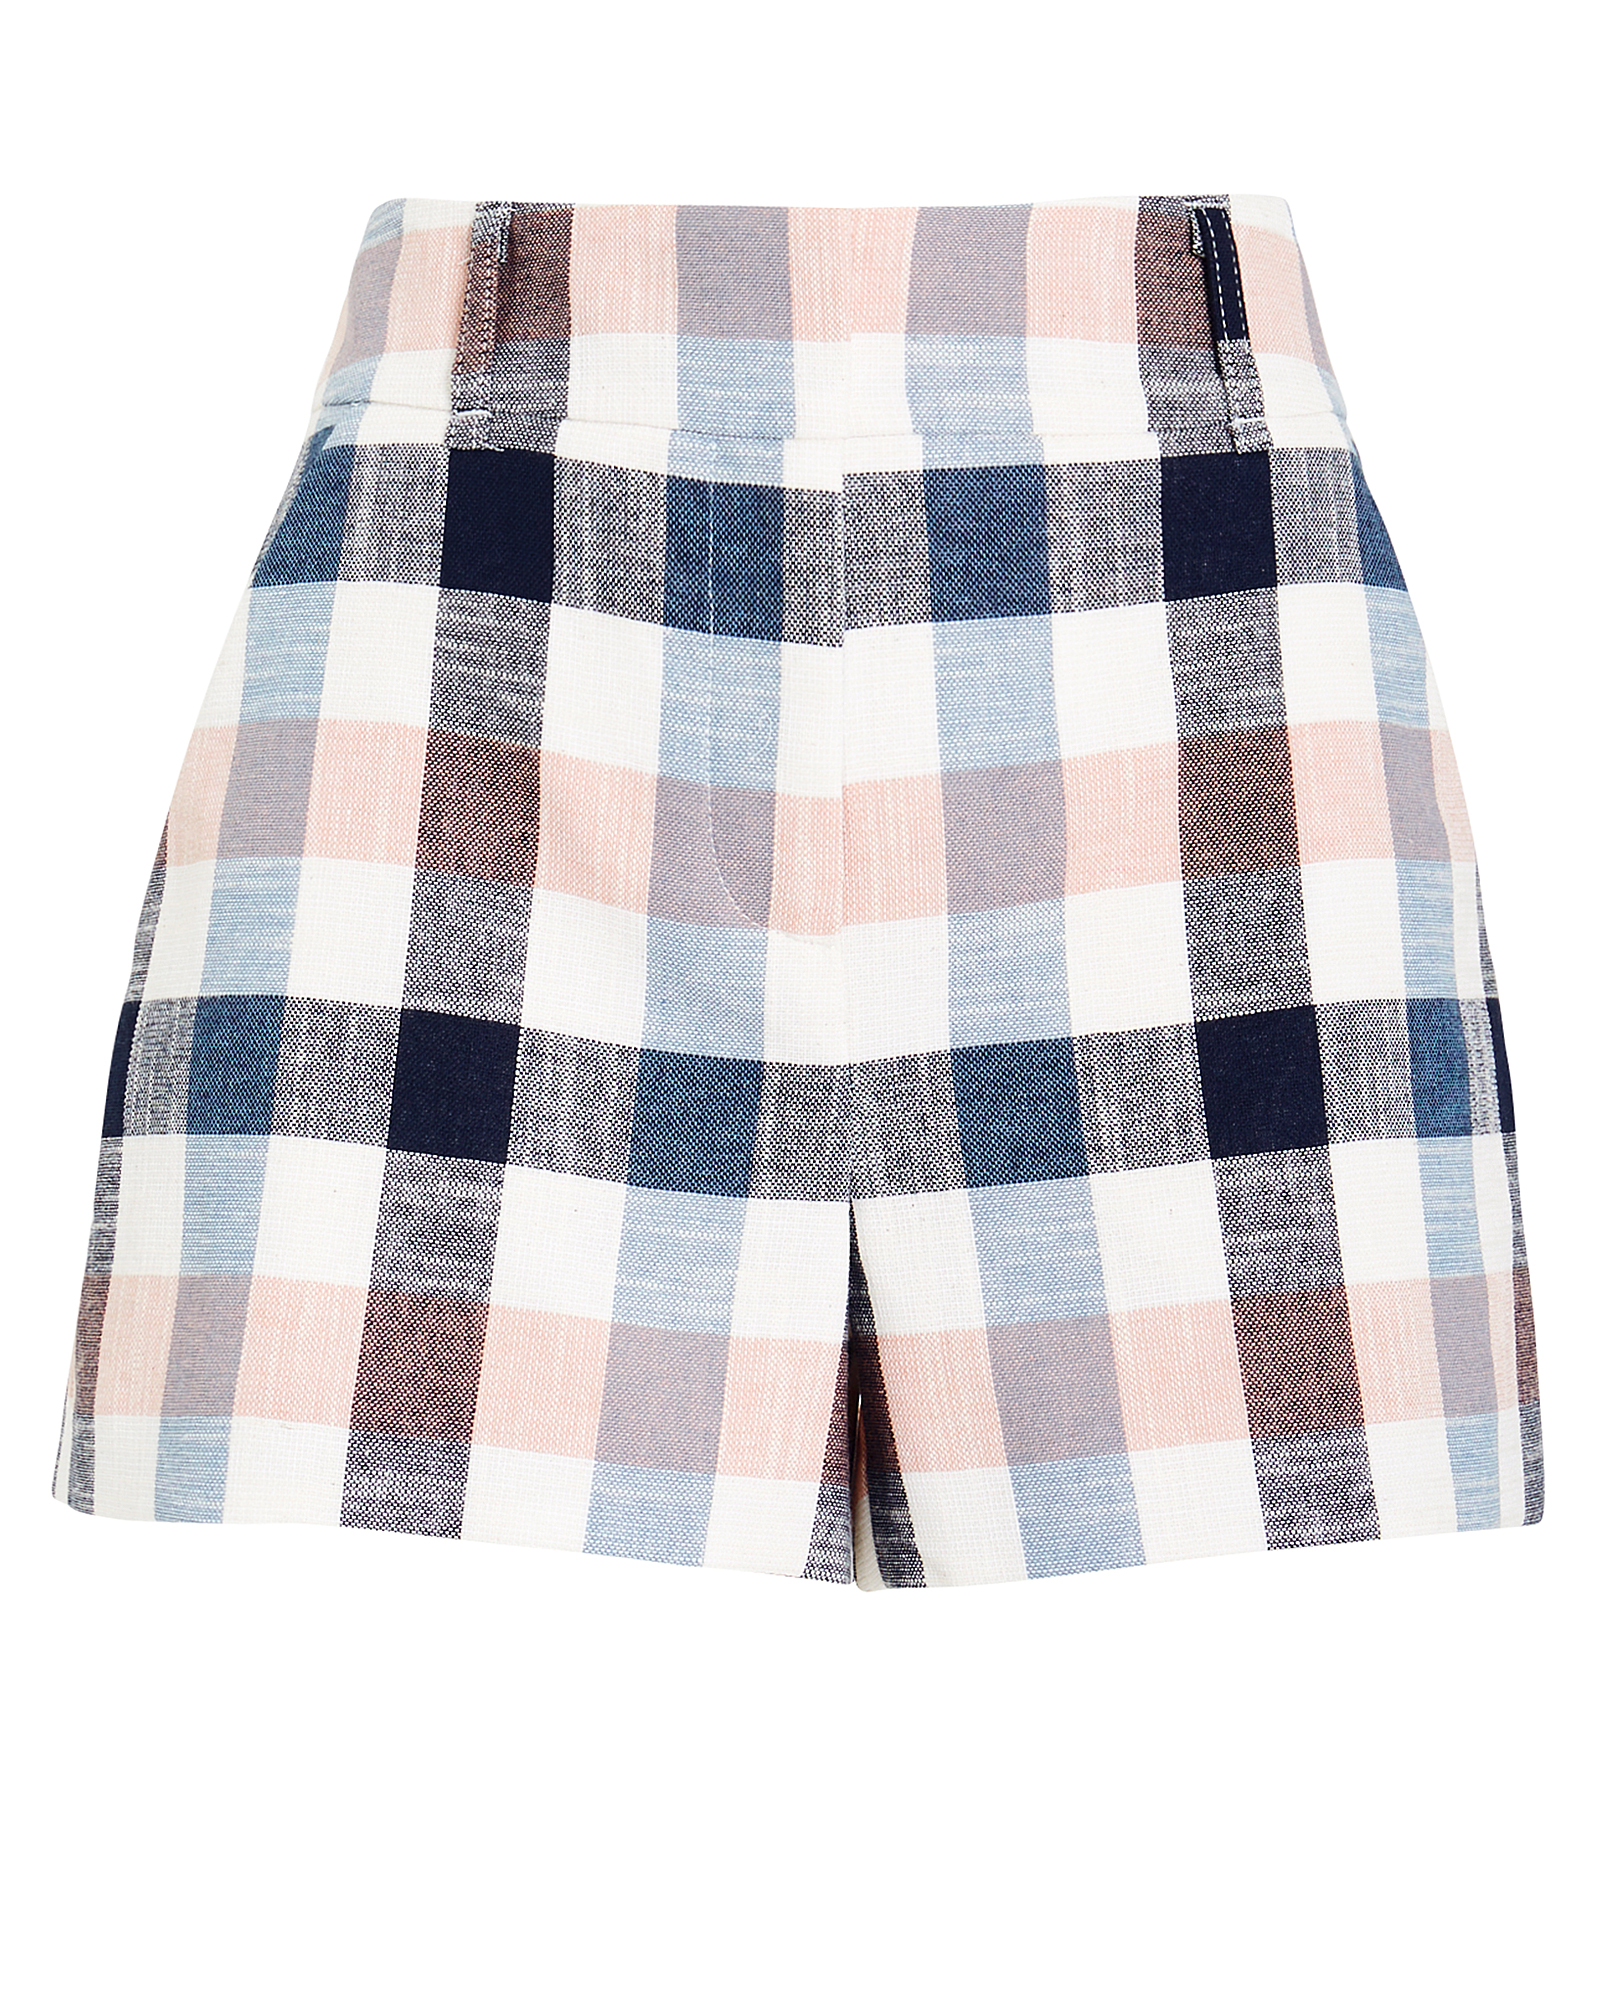 Veronica Beard Shorts VERONICA BEARD ILENE TAILORED GINGHAM SHORTS  BLUE/PINK 4